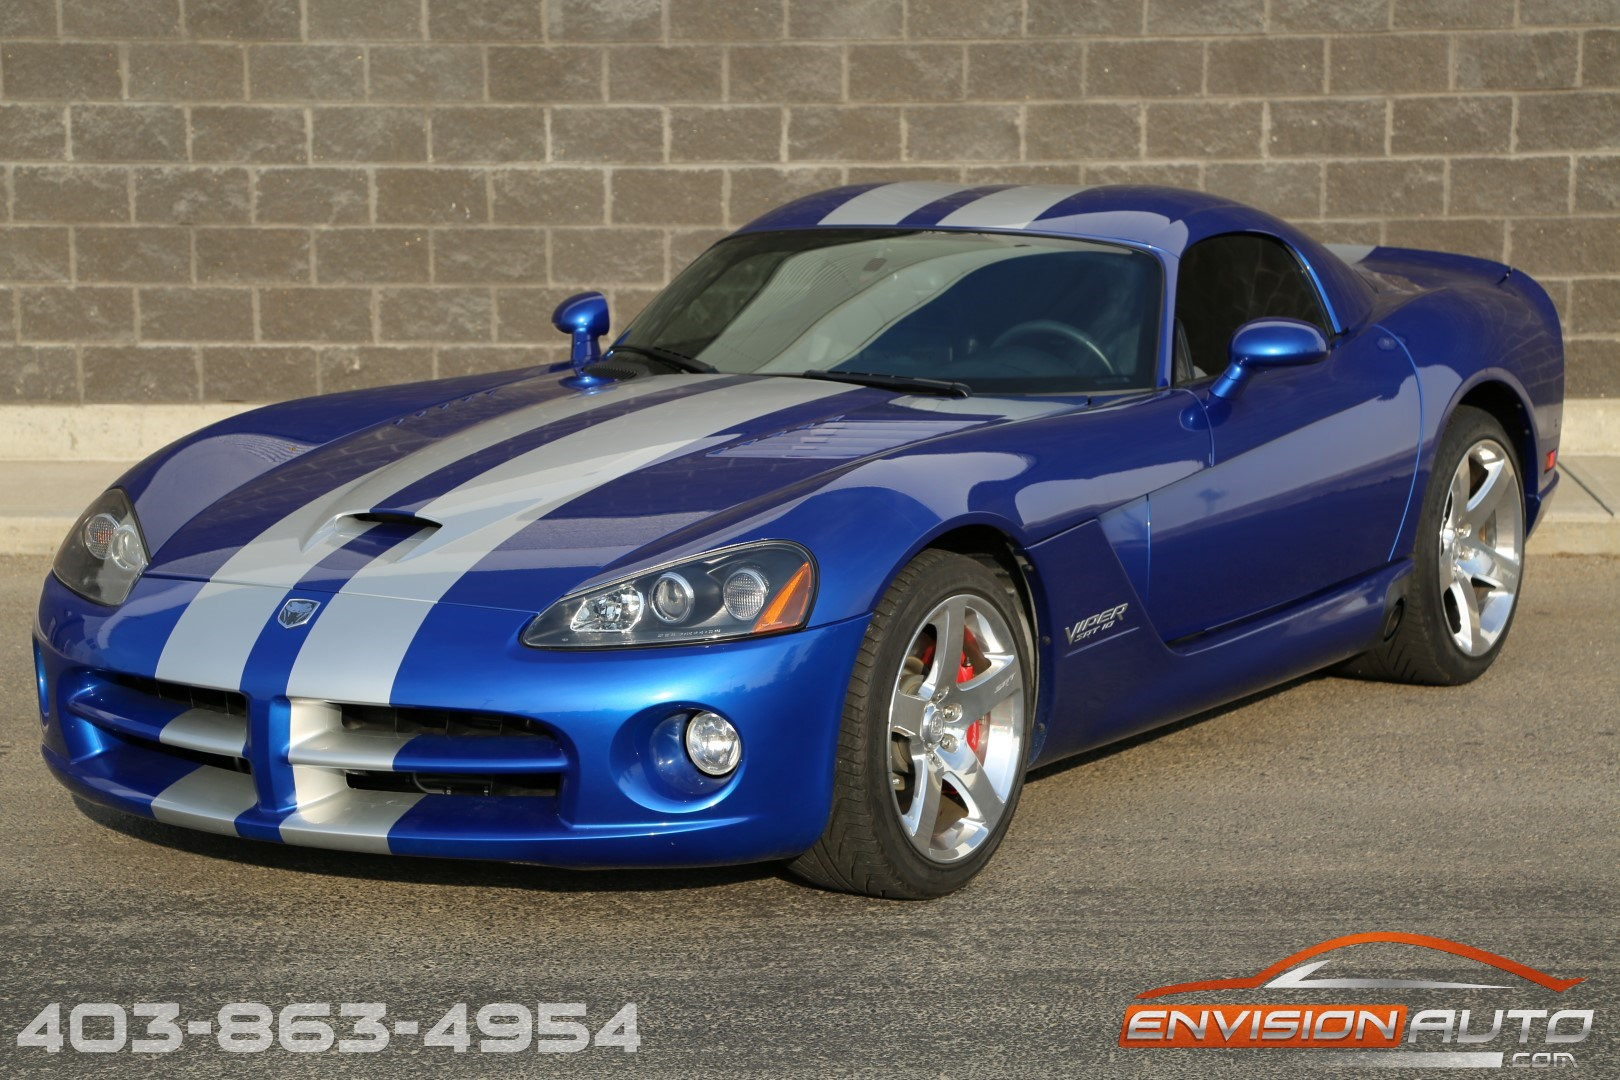 2006 dodge viper srt 10 coupe local alberta car only 19 500kms envision auto calgary. Black Bedroom Furniture Sets. Home Design Ideas